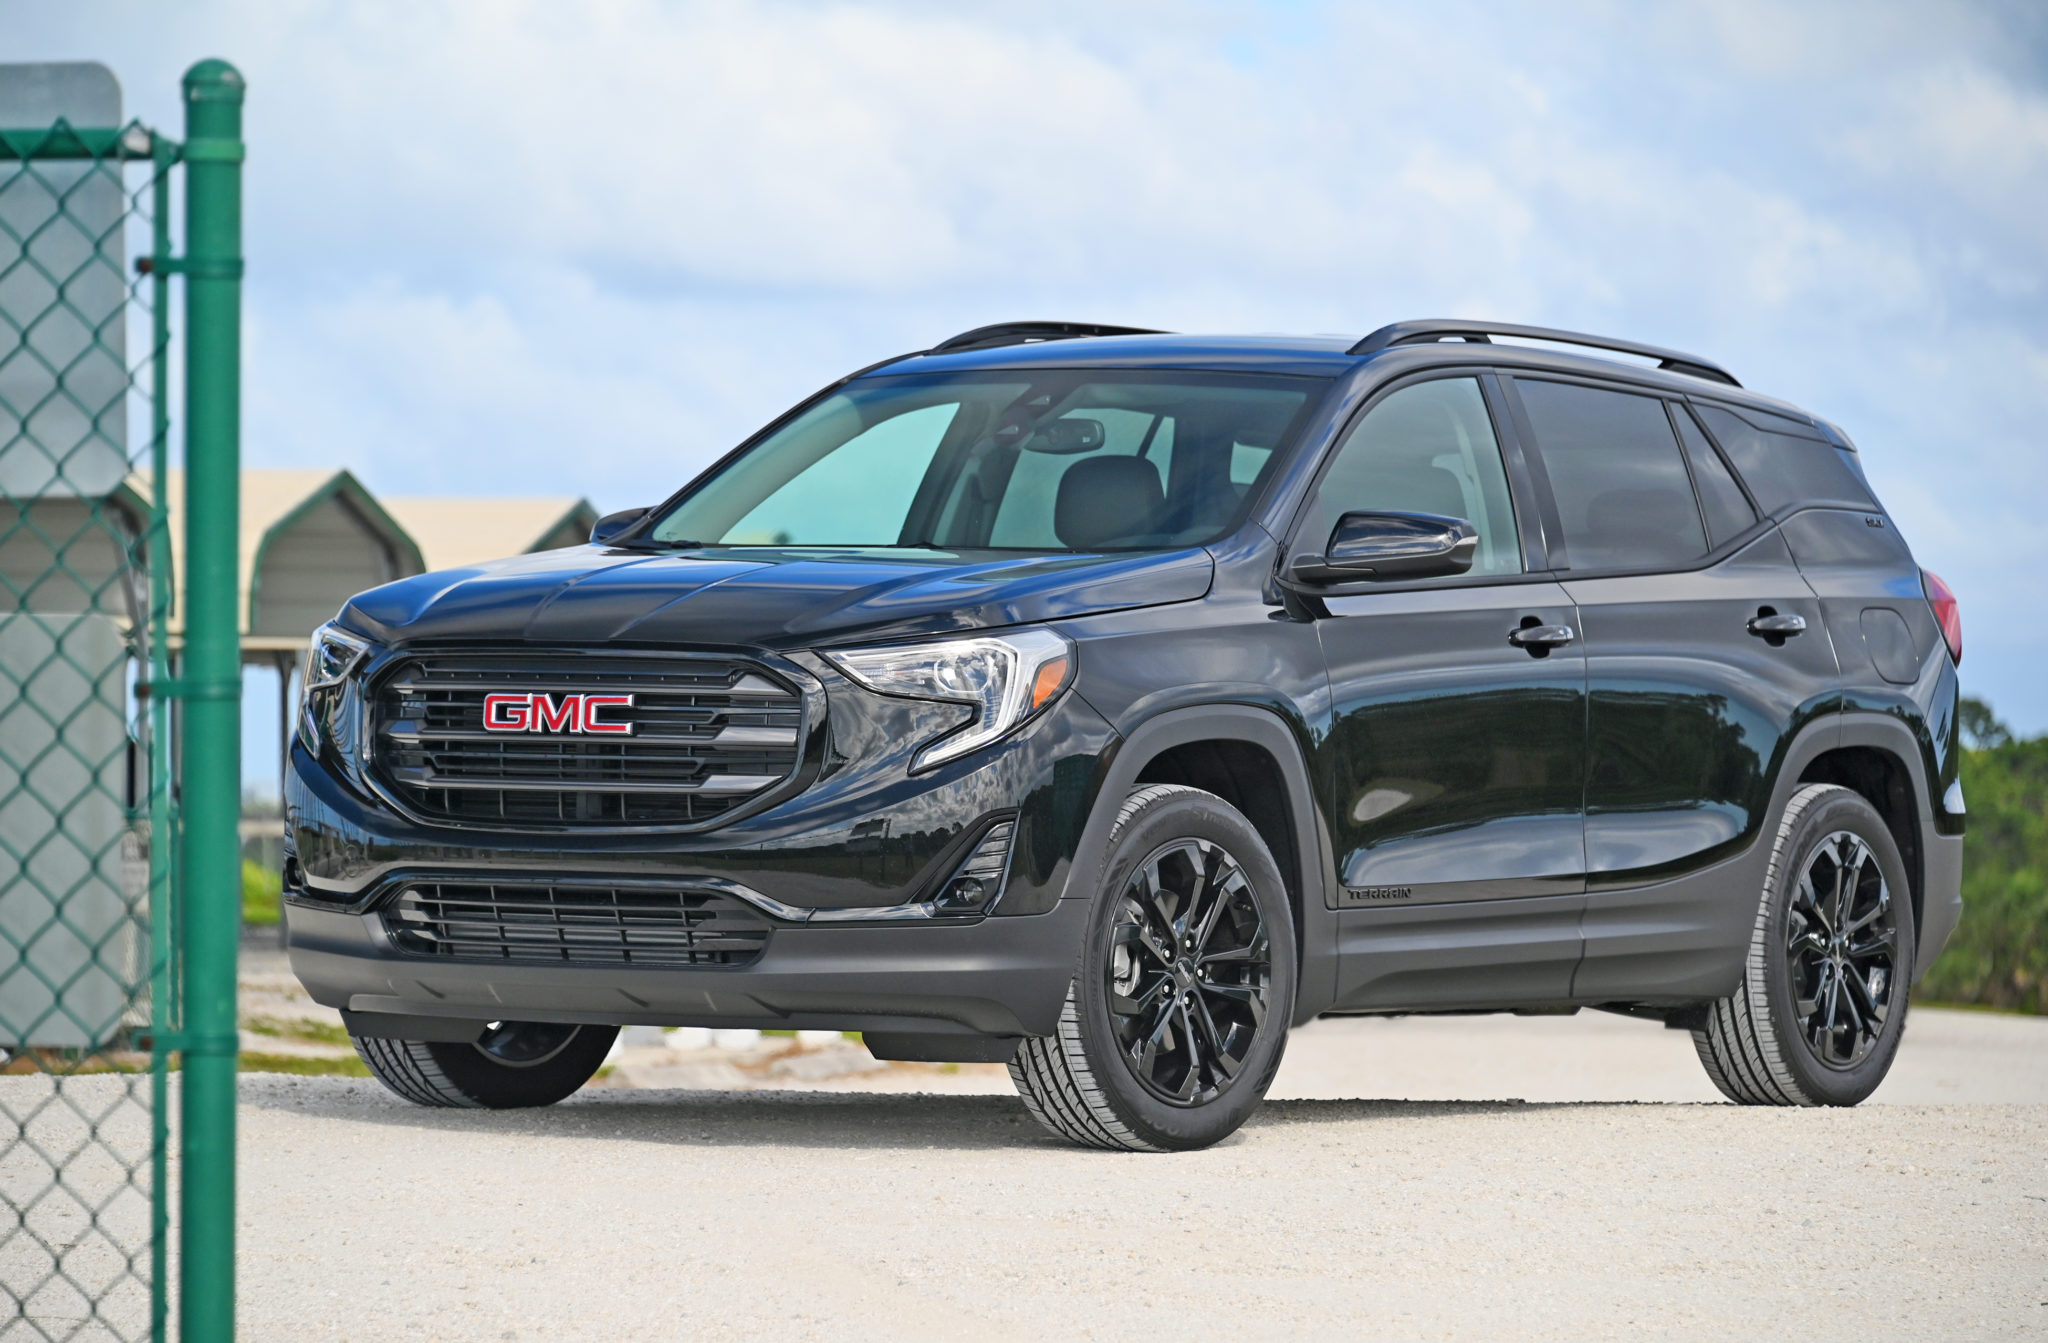 The GMC Terrain AWD SLT Review